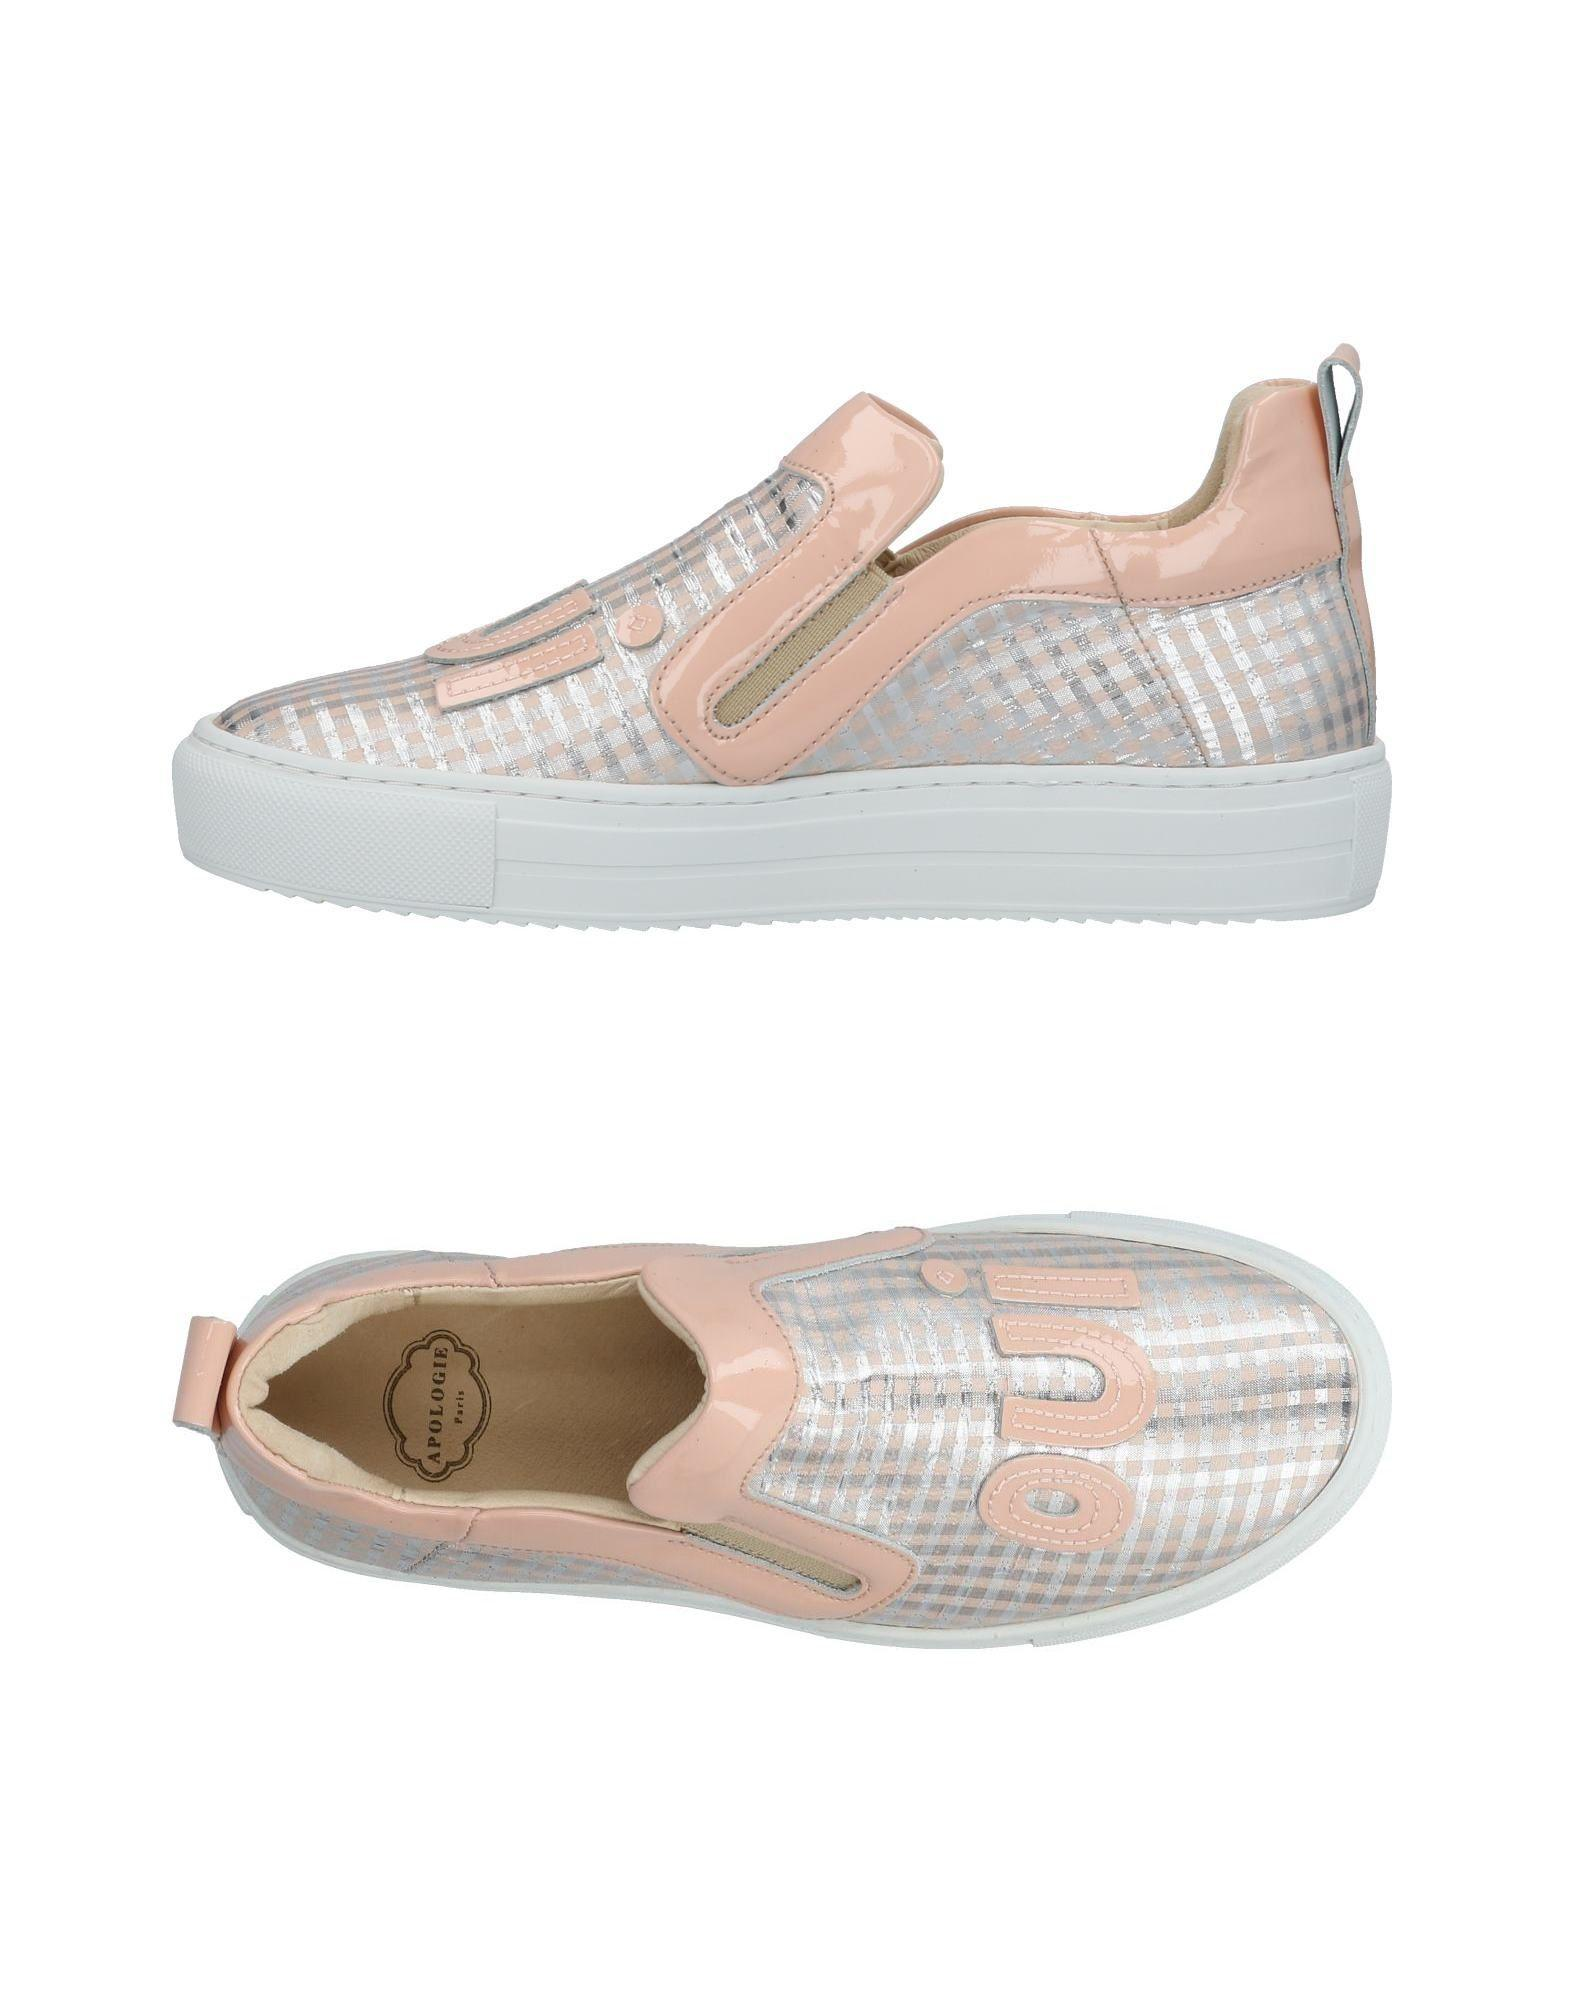 FOOTWEAR - Lace-up shoes on YOOX.COM Apologie qUaQ3d